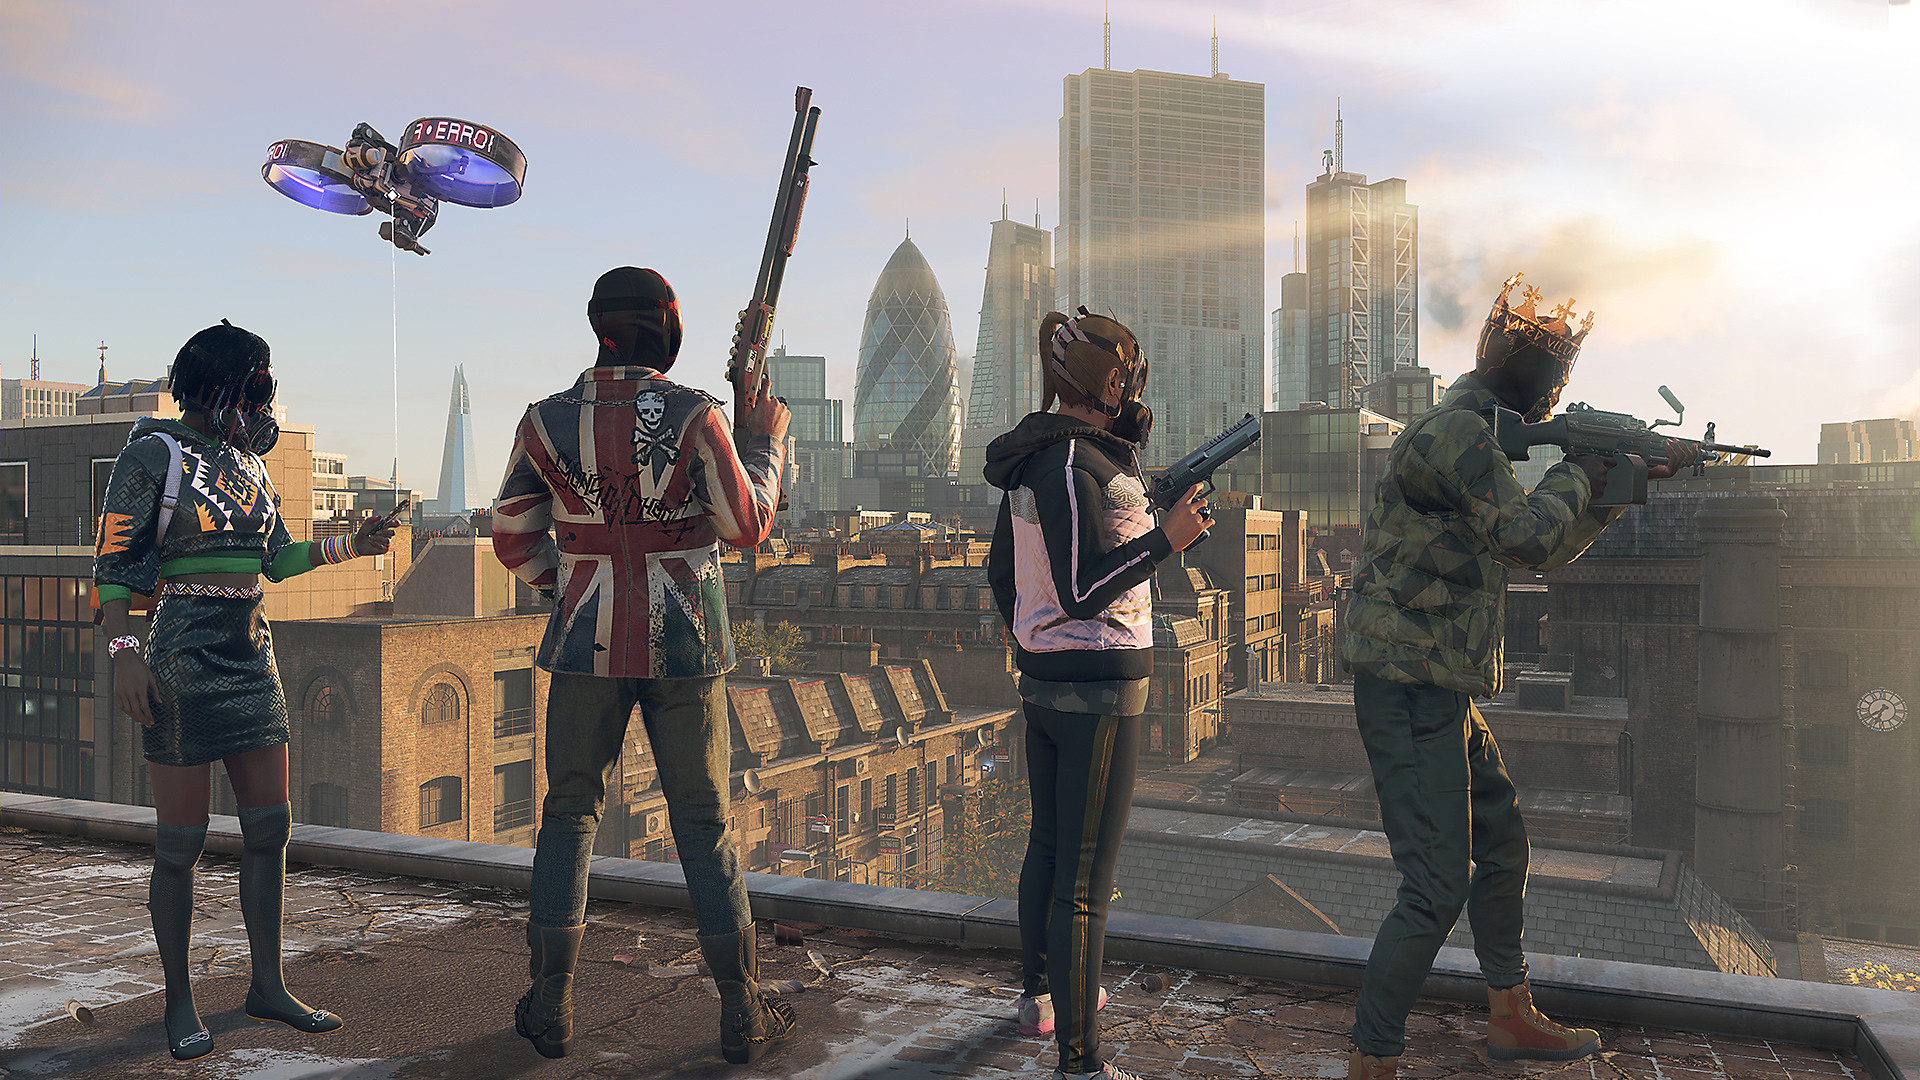 Watch Dogs Legion screenshot - Characters on a rooftop overlooking the city, weapons in hand